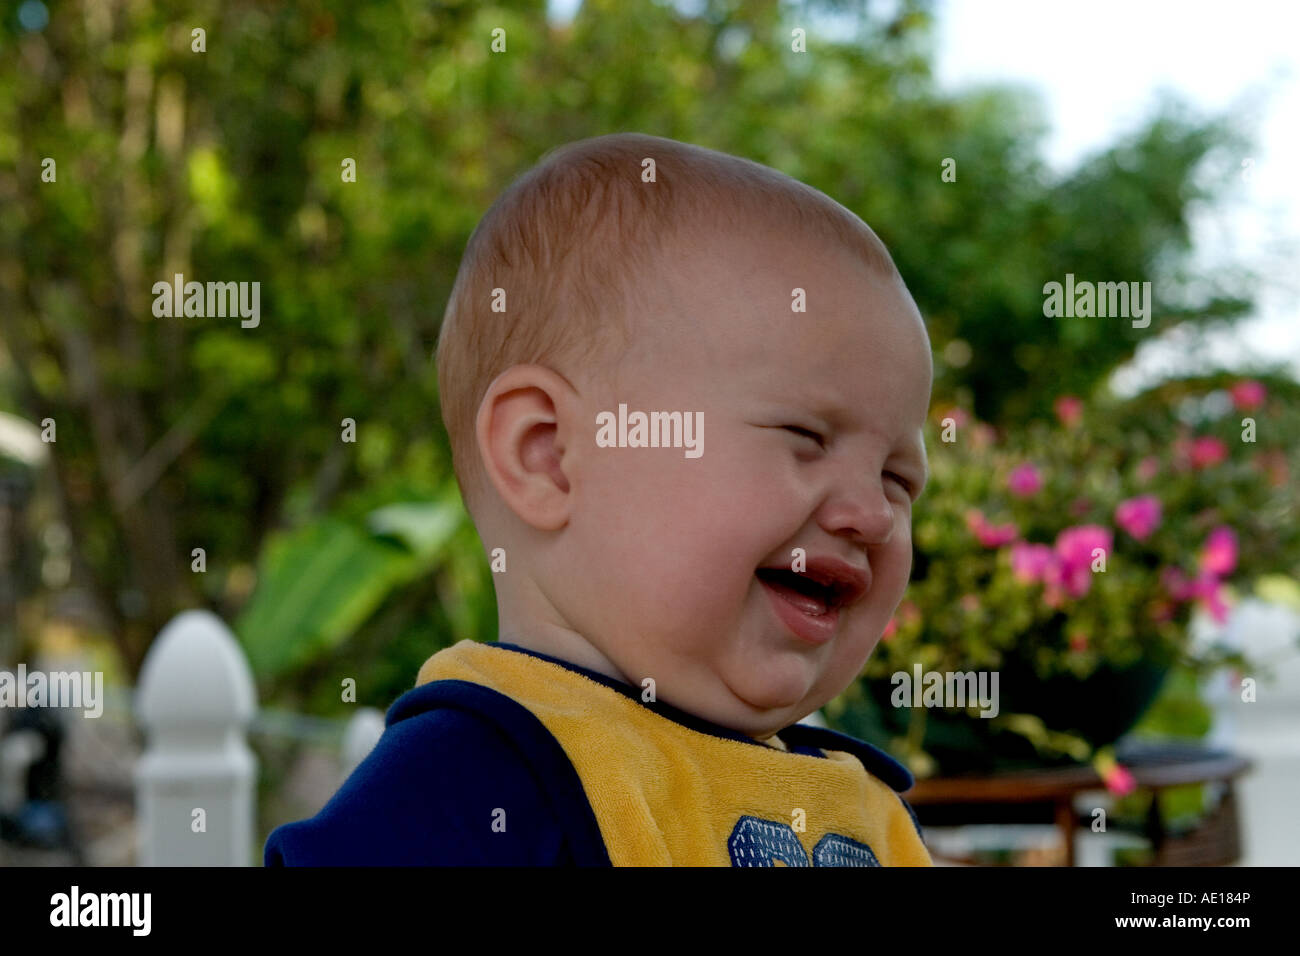 Infant Male Child Head and Shoulders Crying - Stock Image